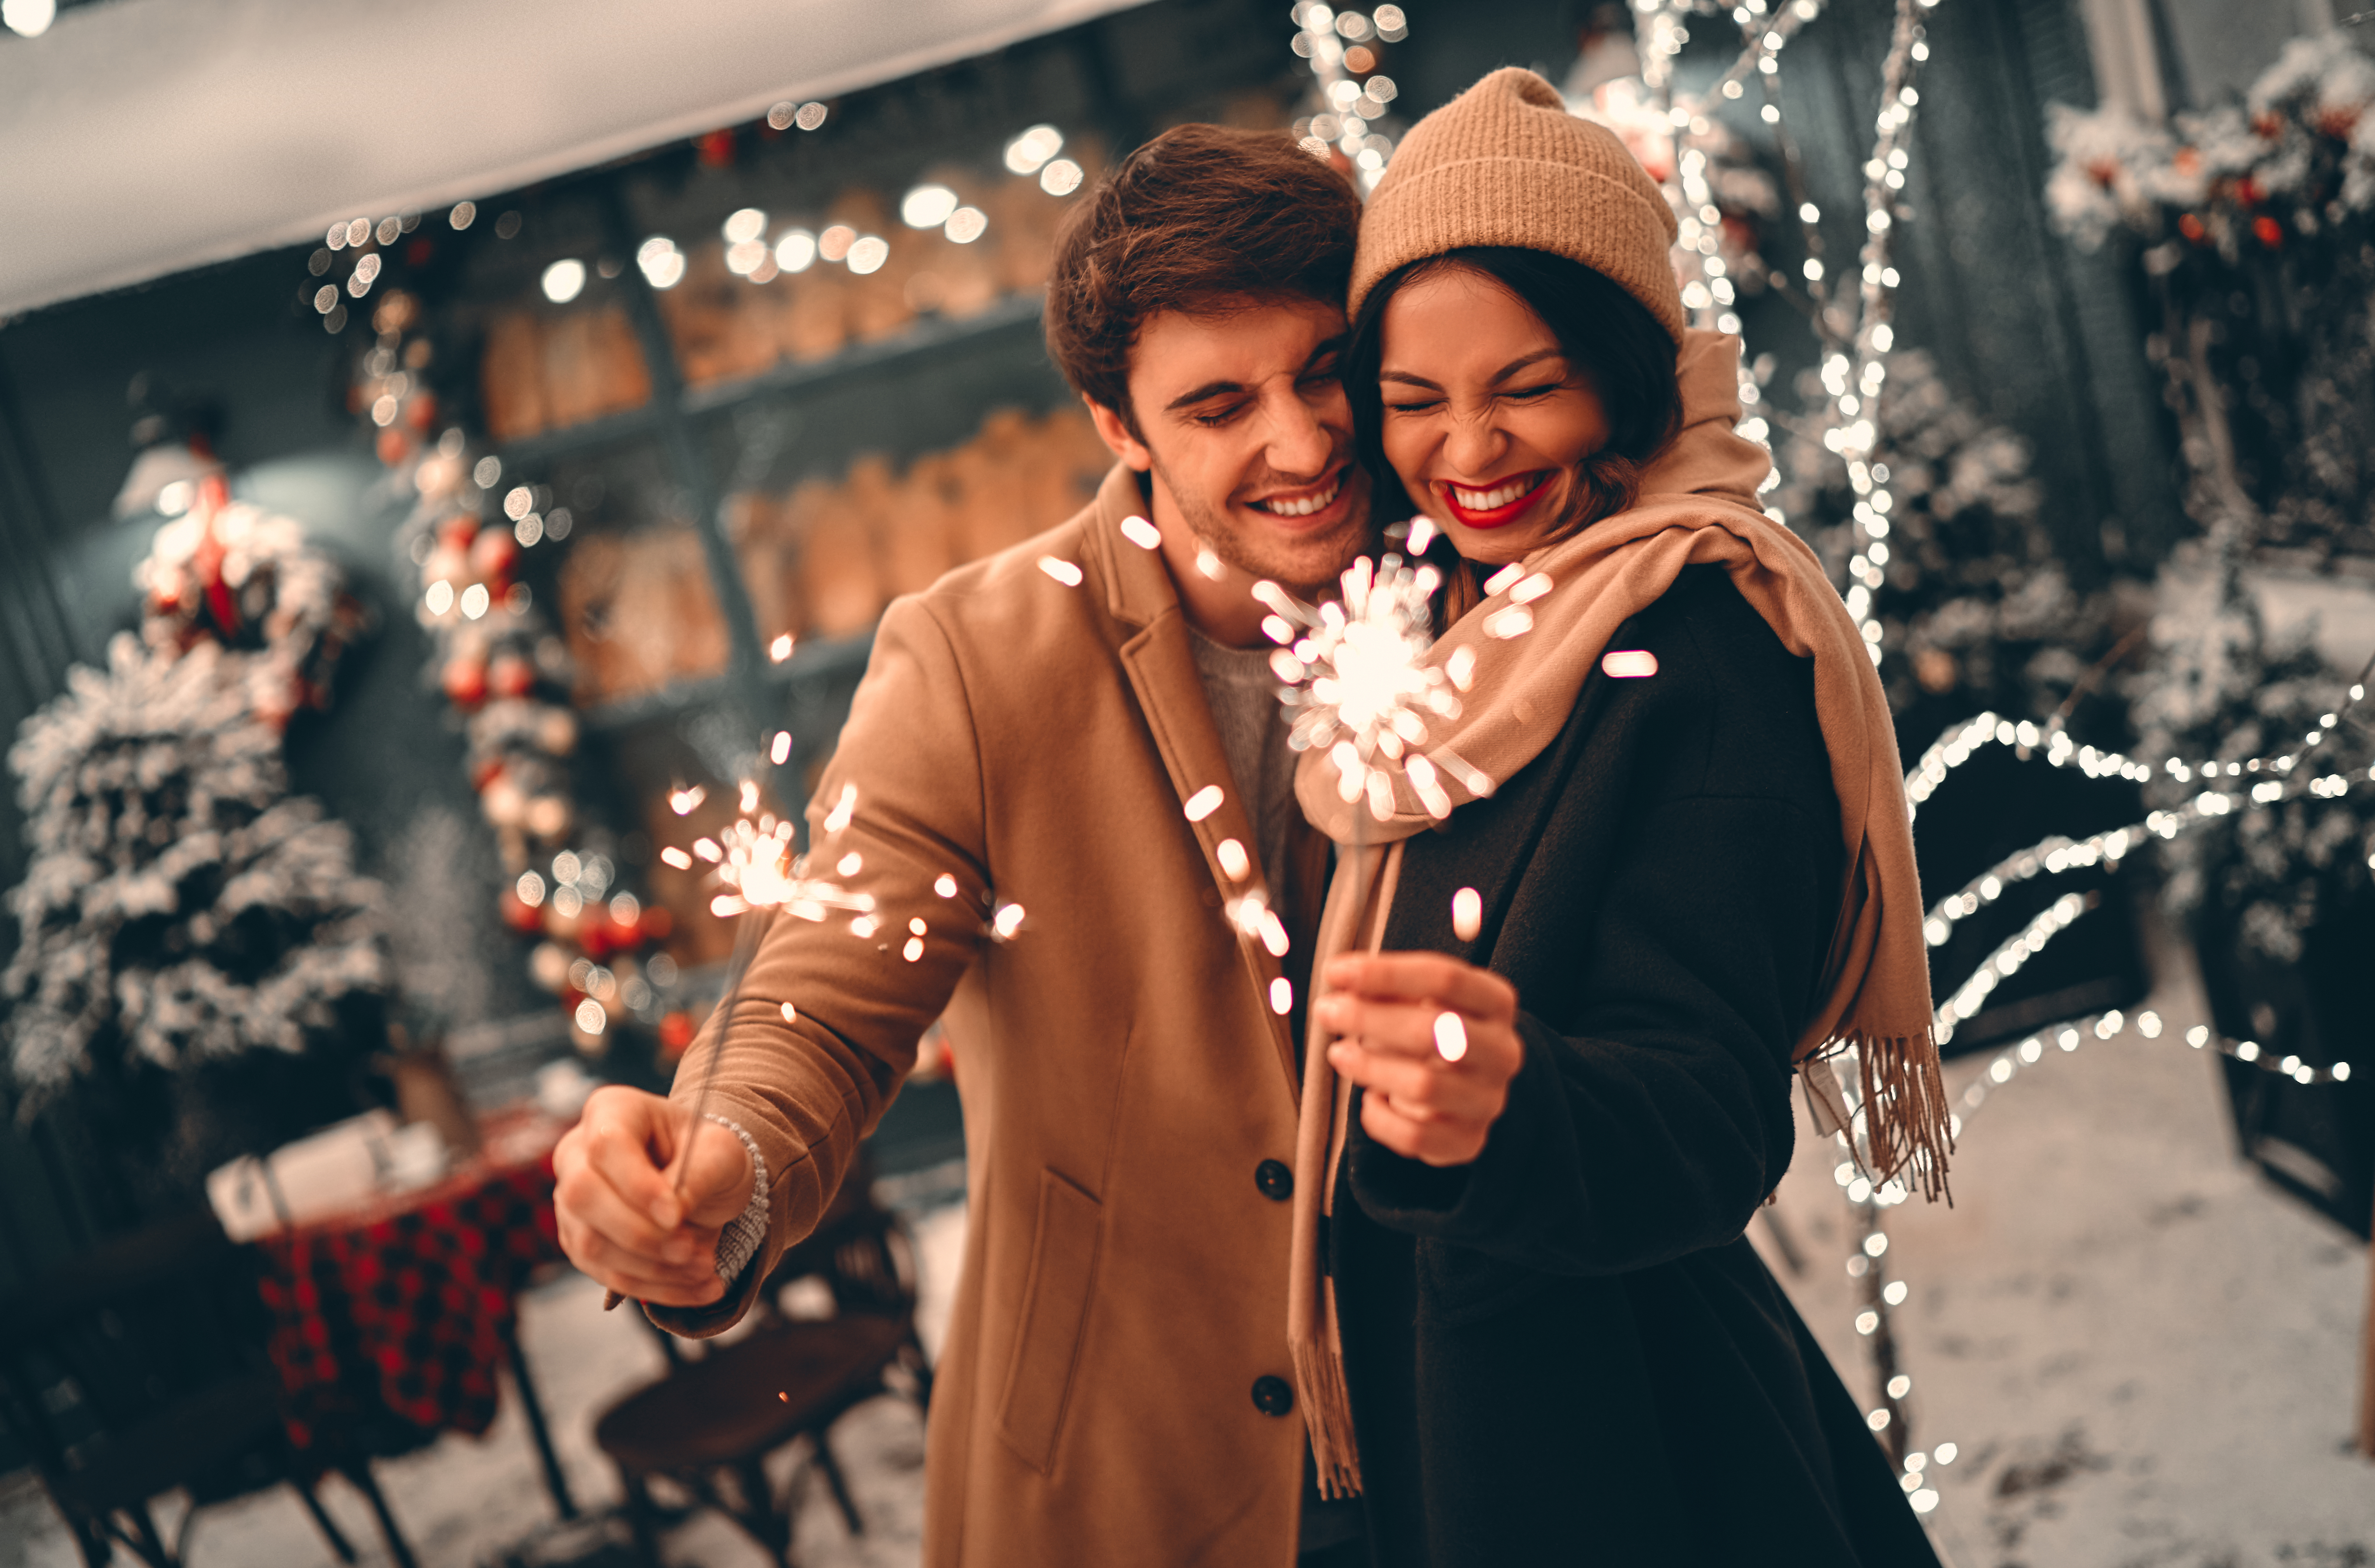 NYE Couple Sparklers at Home